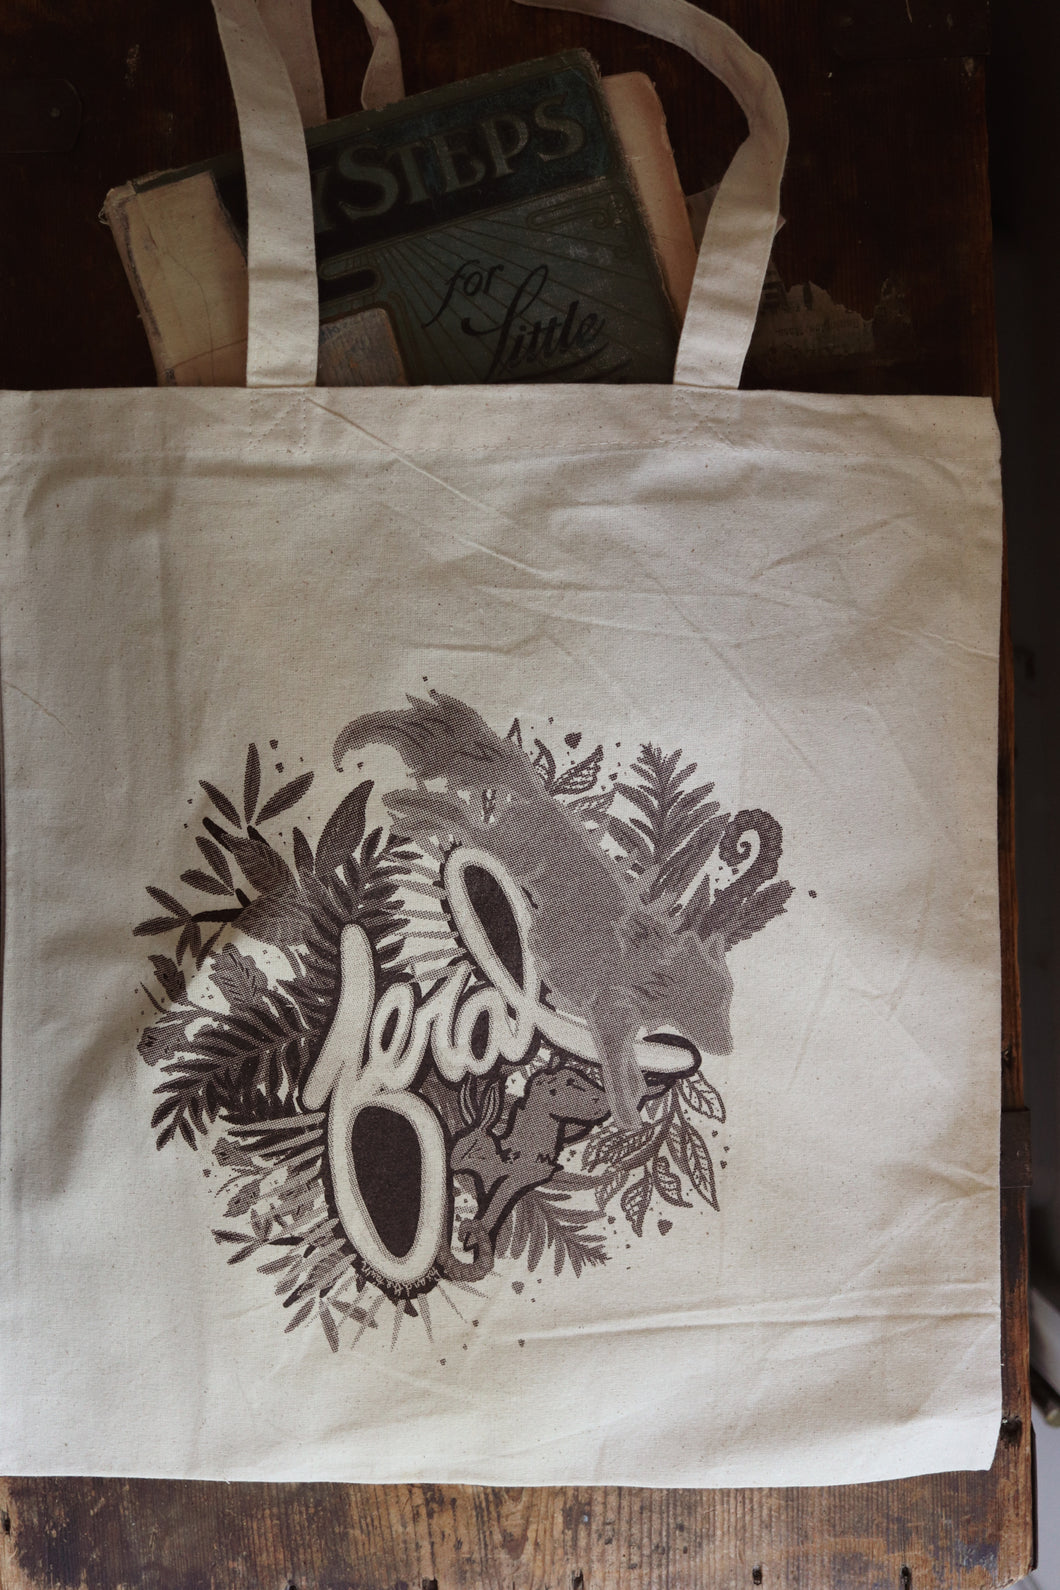 Feral Wolf / Rabbit Tote Bag